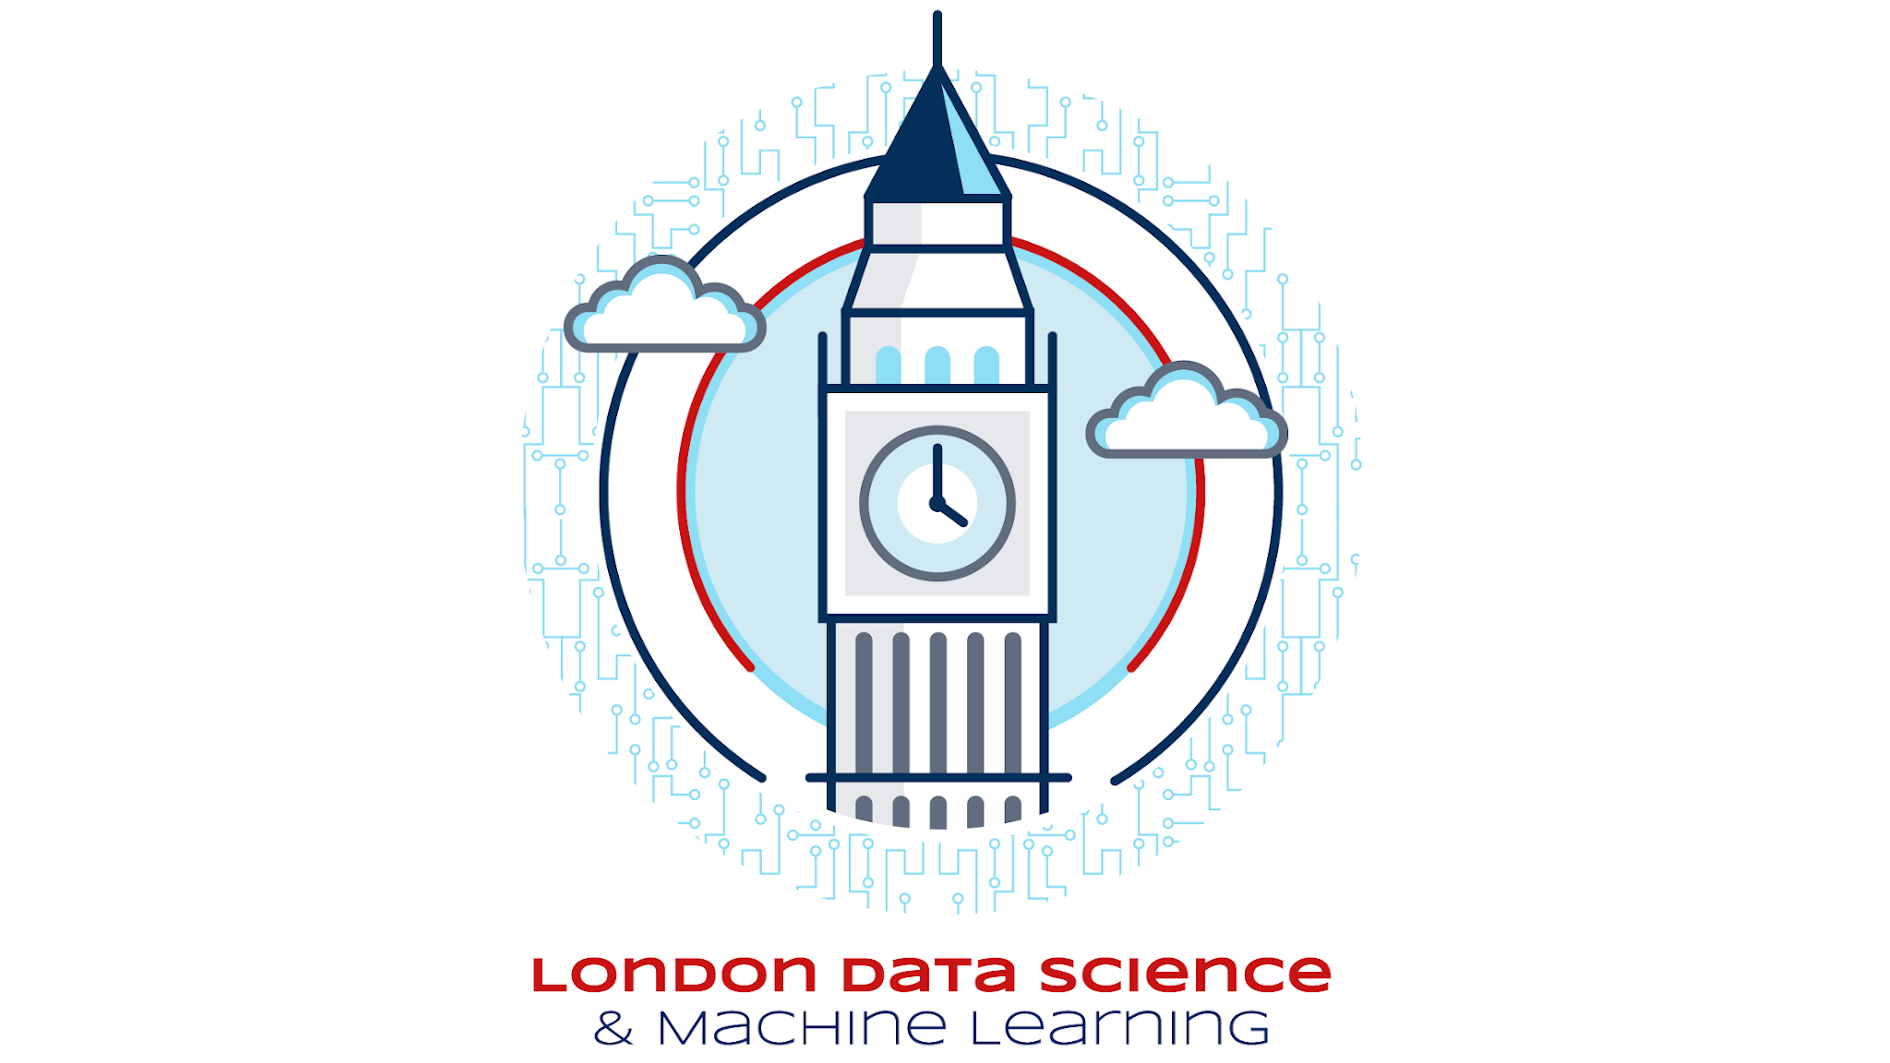 London Data Science and Machine Learning